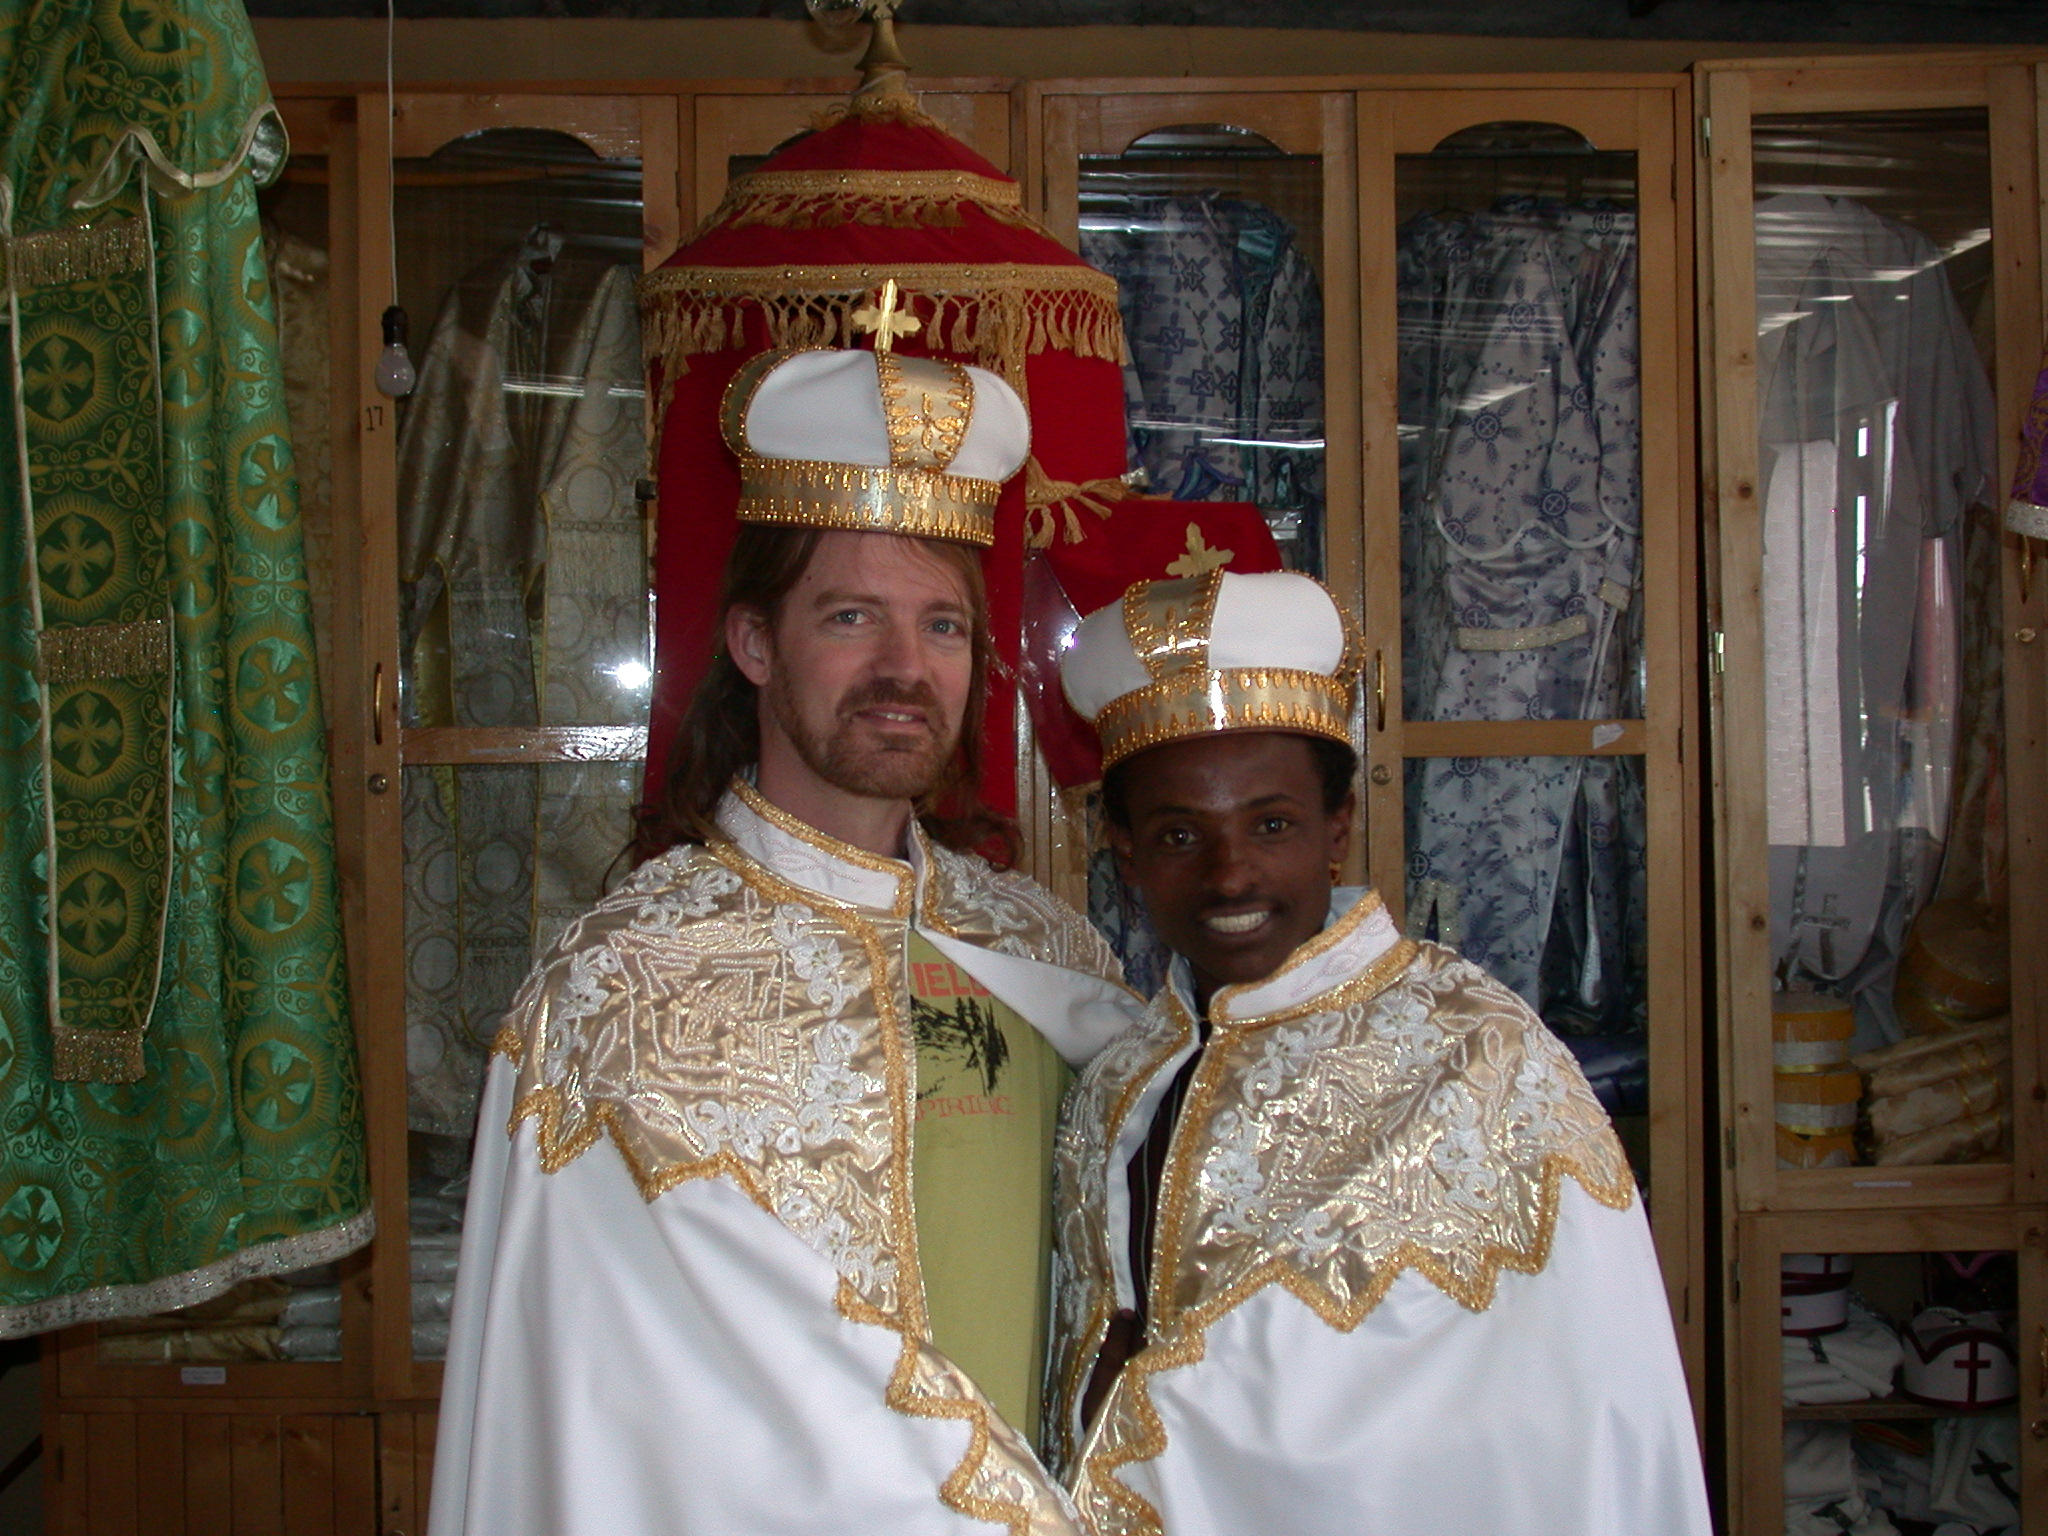 Will and Shop Employee in Marriage Gowns at Church Shop, Addis Ababa, Ethiopia